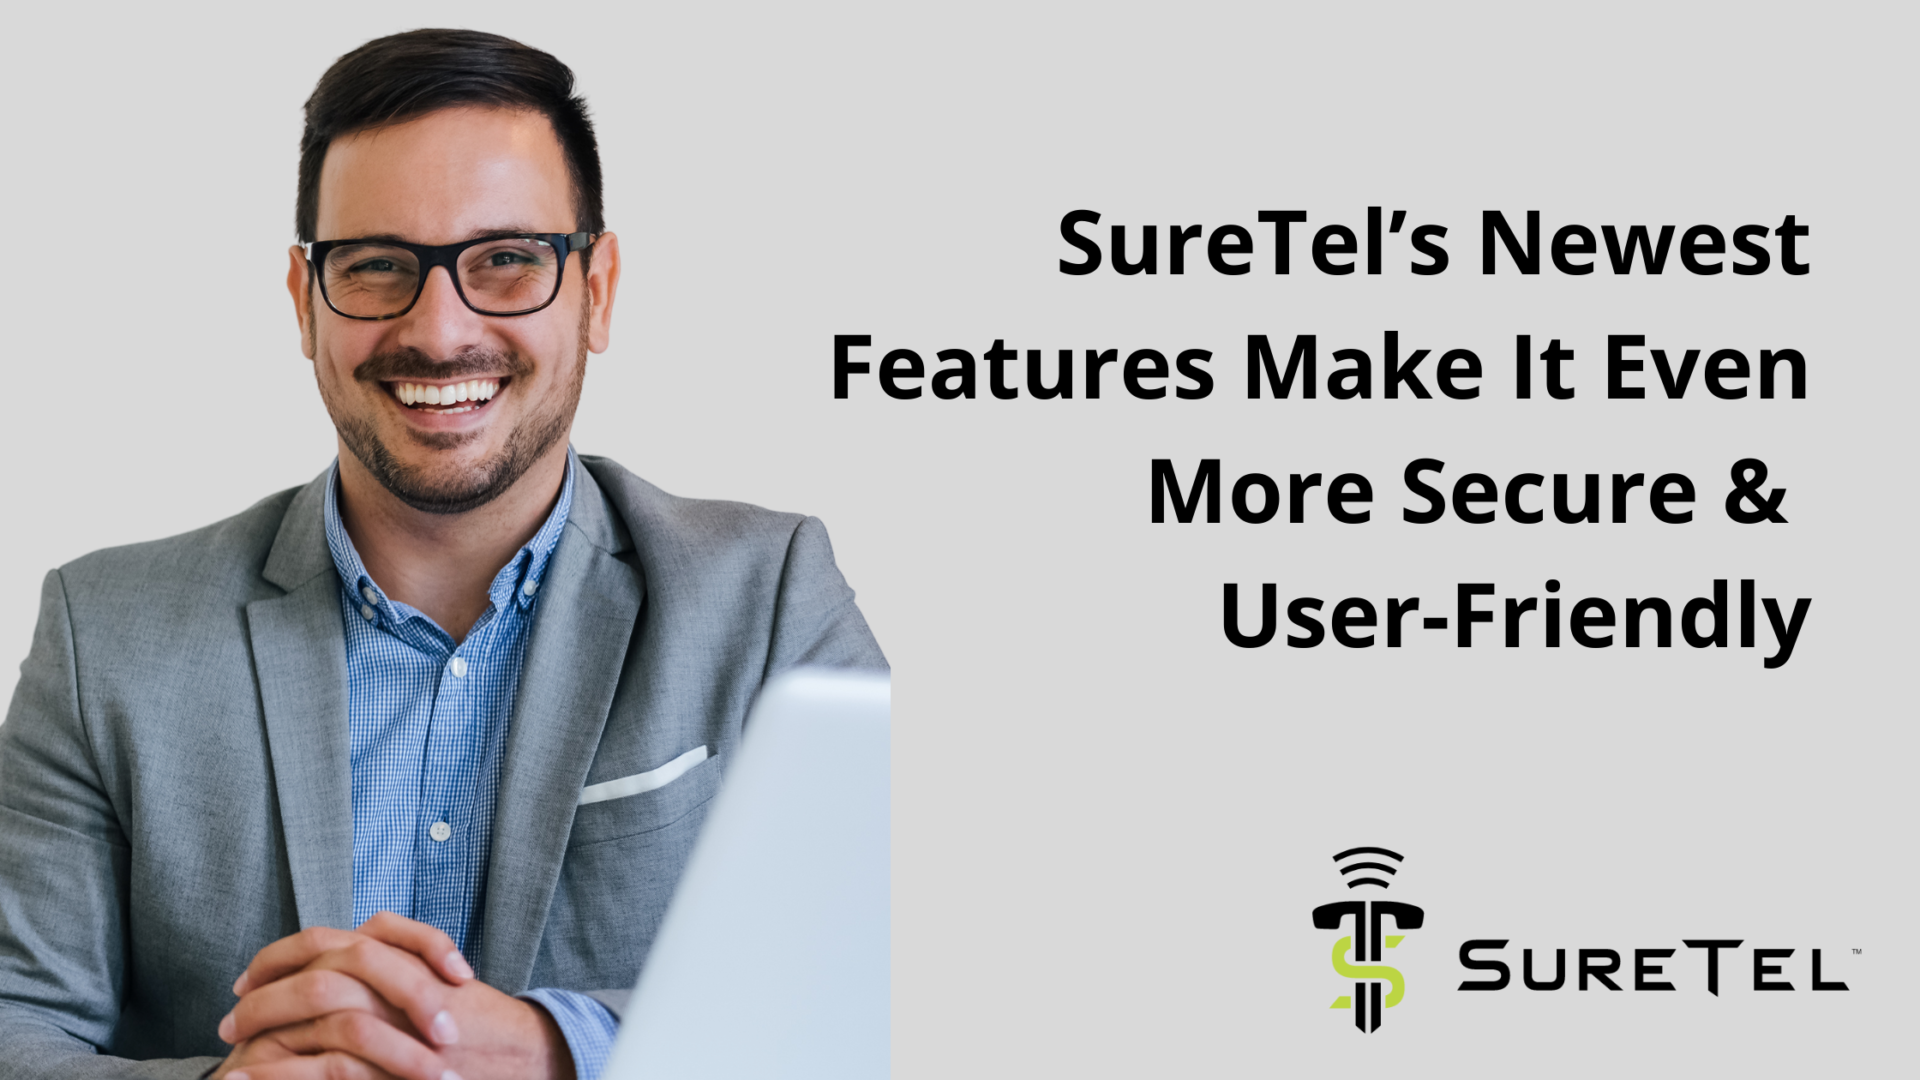 SureTel's Newest Features Make It Even More Secure & User-Friendly